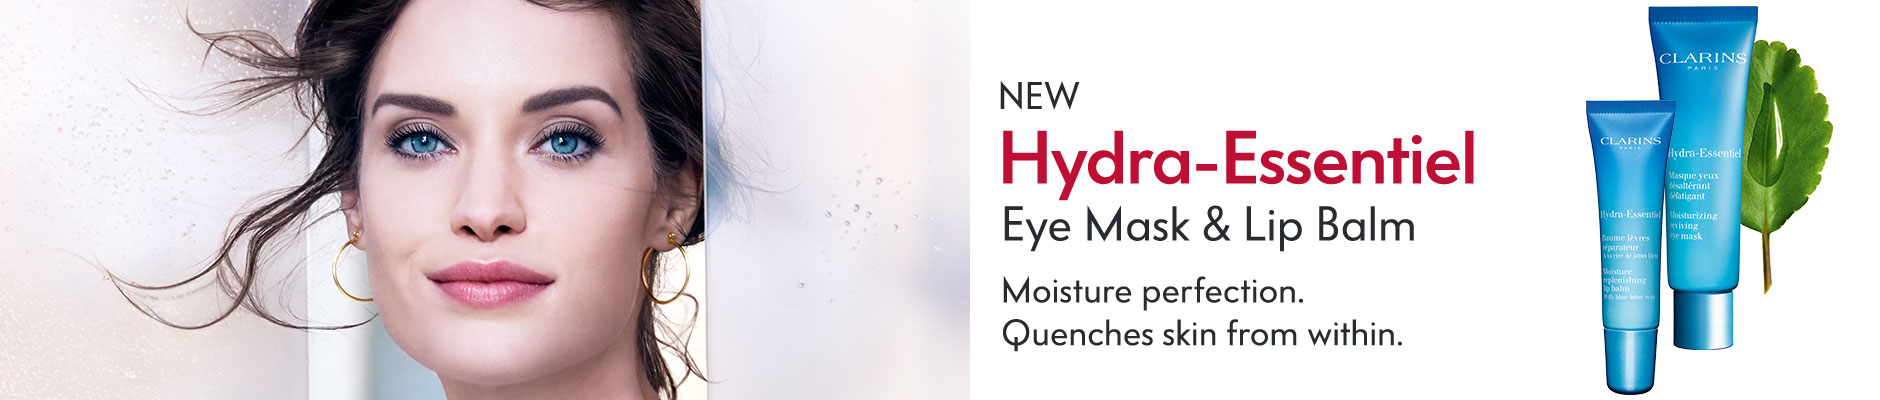 New Hydra-Essentiel Eye Mask & Lip Balm - Moisture perfection. Quenches skin from within.